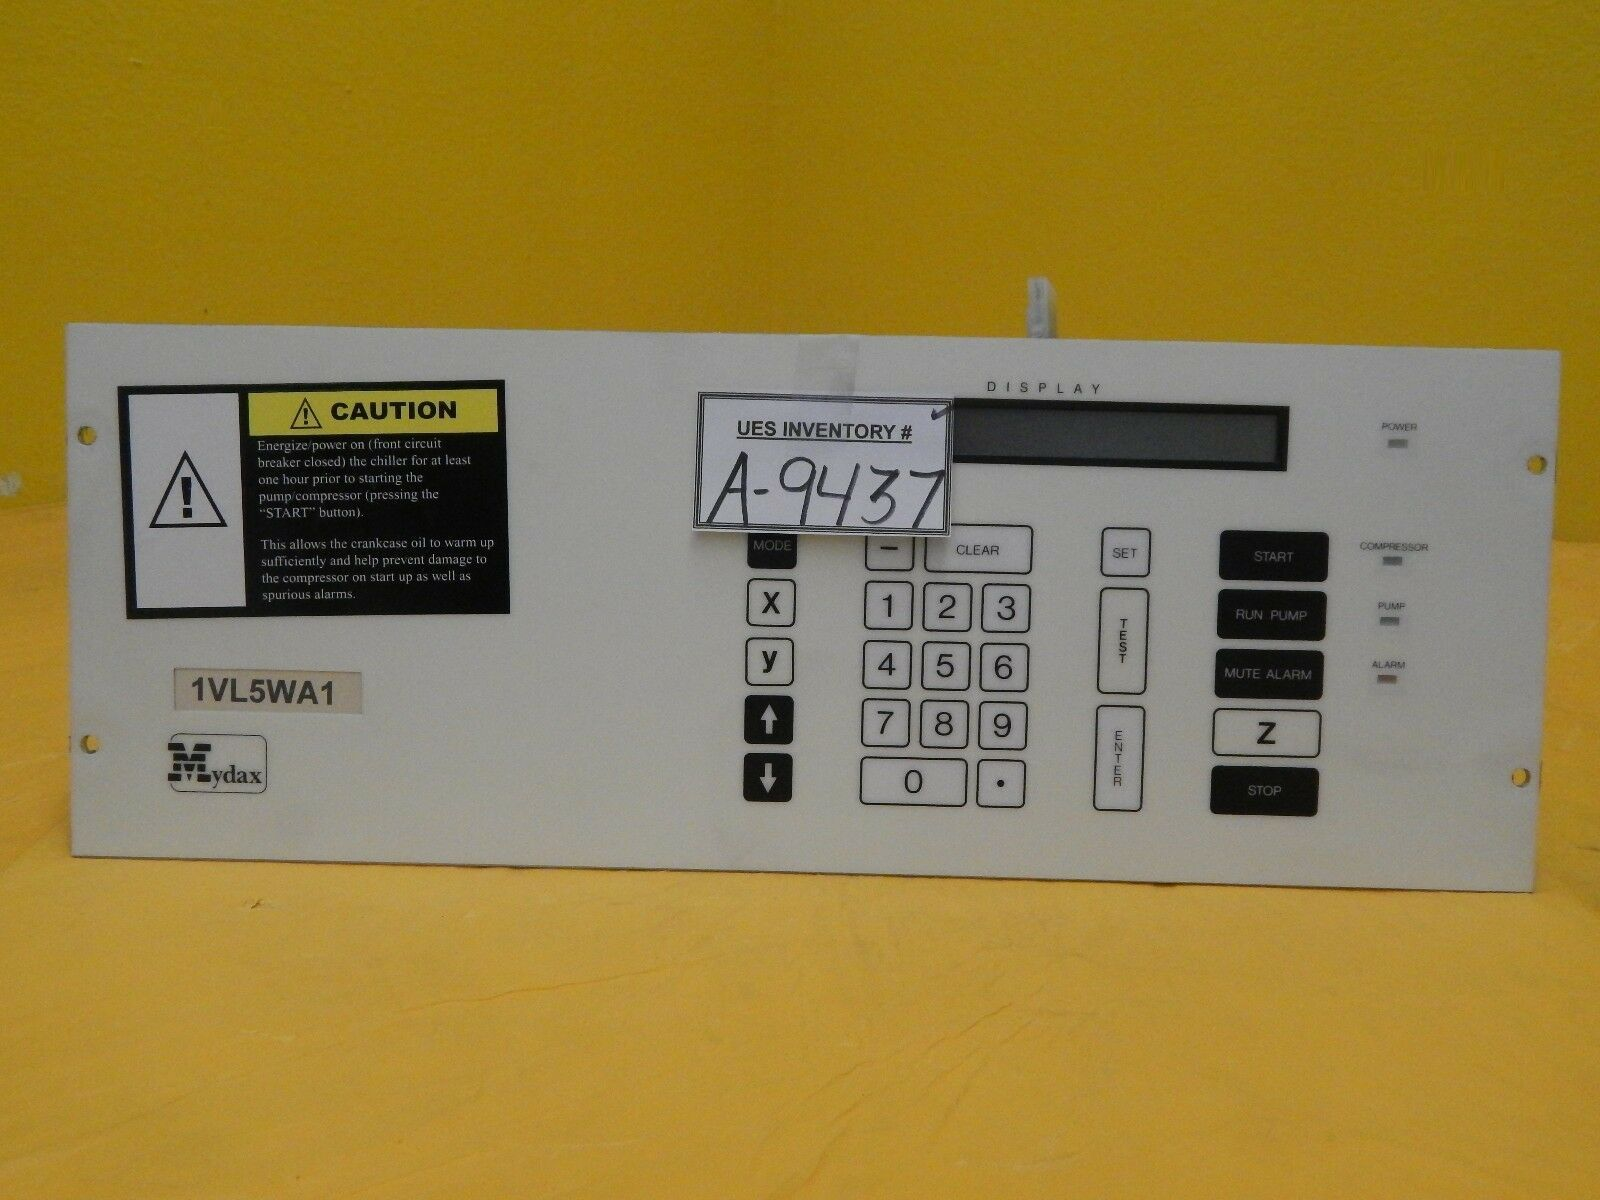 Mydax M1001E Chiller Operator Interface Controller Panel 1VL5WA1 Used Working